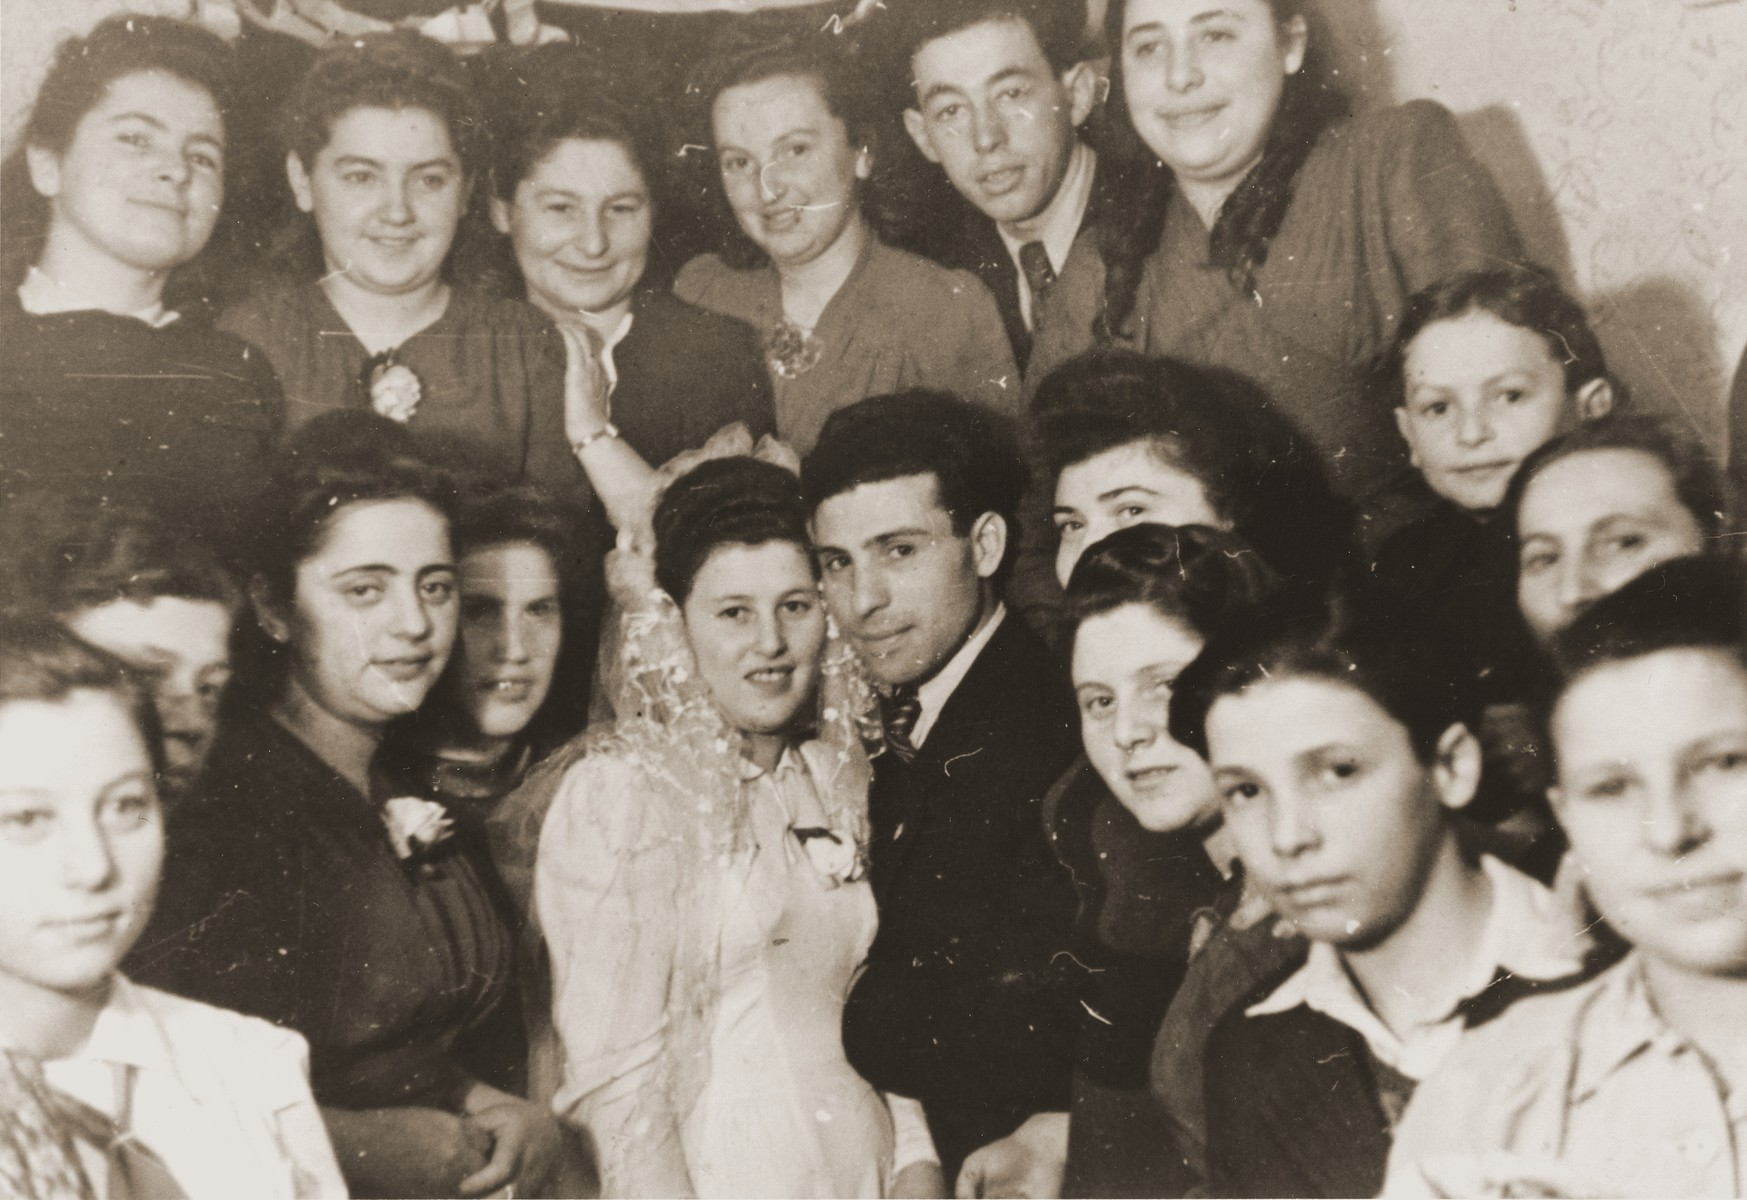 A Jewish bride and groom pose with their family and friends in the Neu Freimann displaced persons camp.  Pictured are the newlyweds, Samuel and Lilly Scherb.